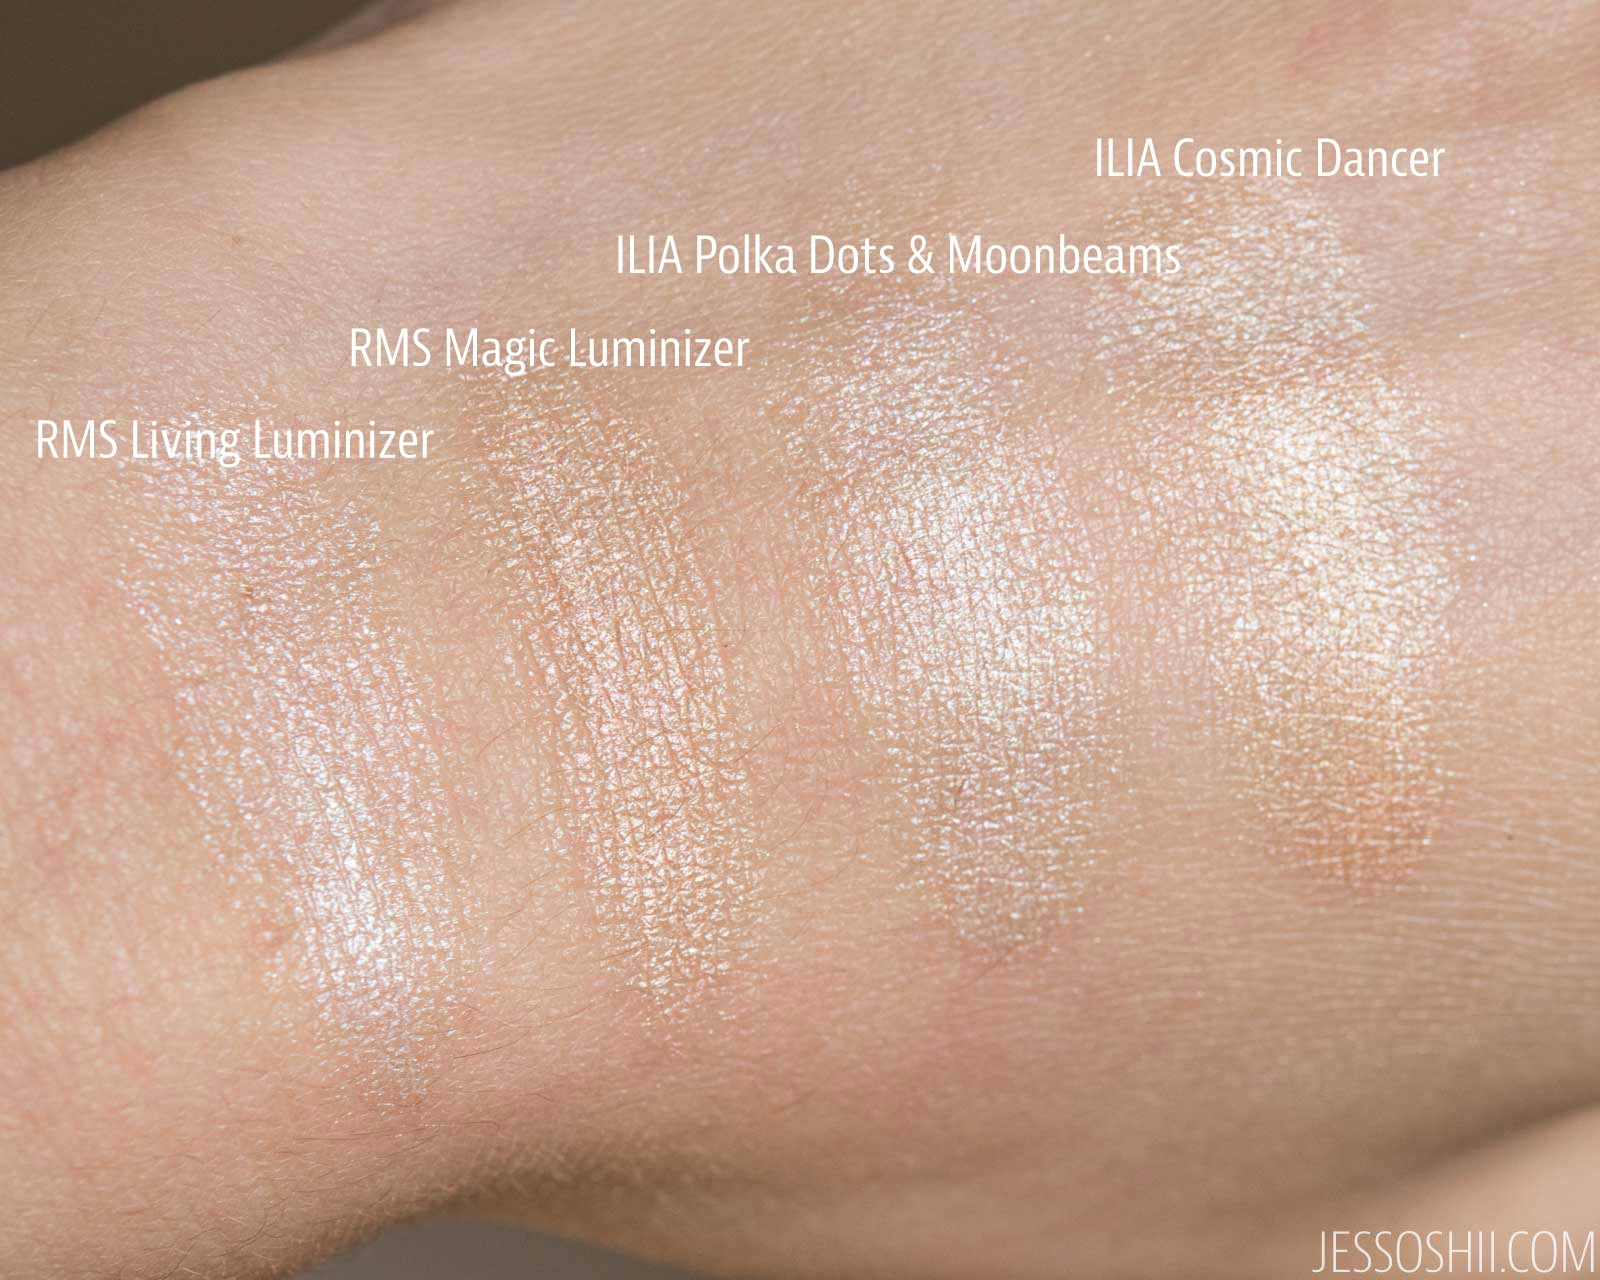 ILIA Beauty Illuminators swatches compared to RMS Beauty Luminizers